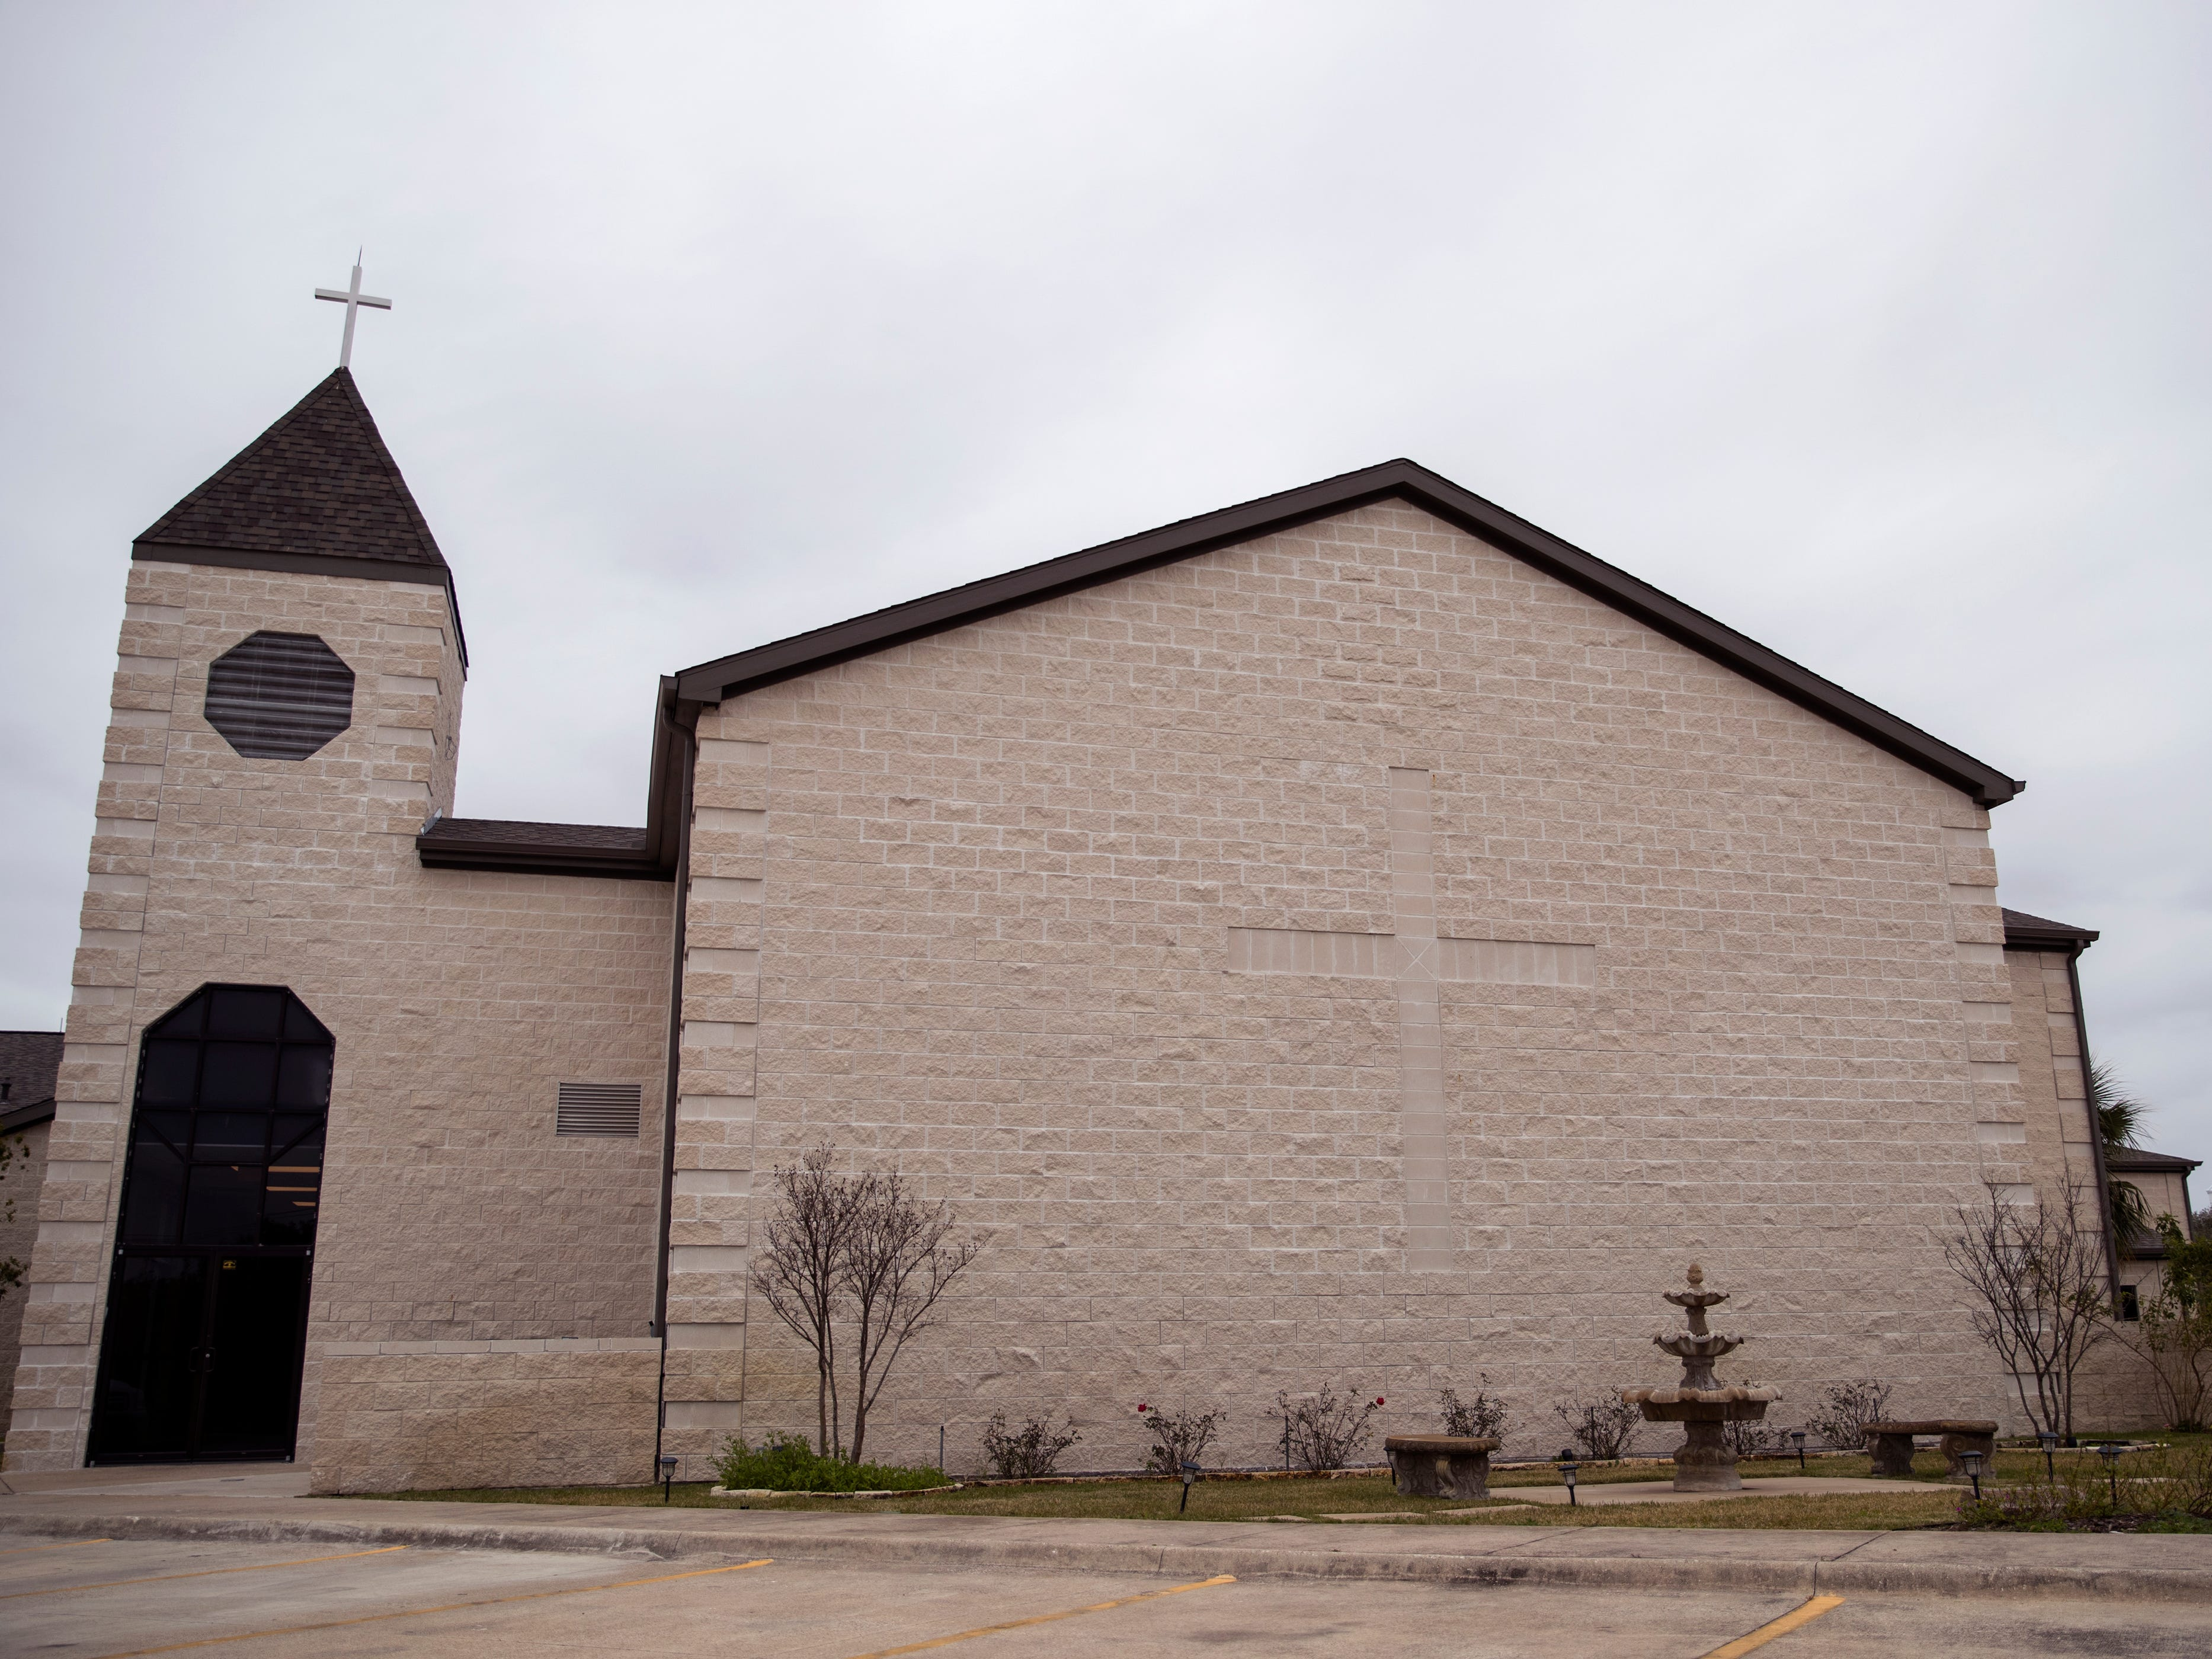 The First Baptist Church had planned for a hurricane, with both insurance and a reserve of $300,000 in a hurricane fund.